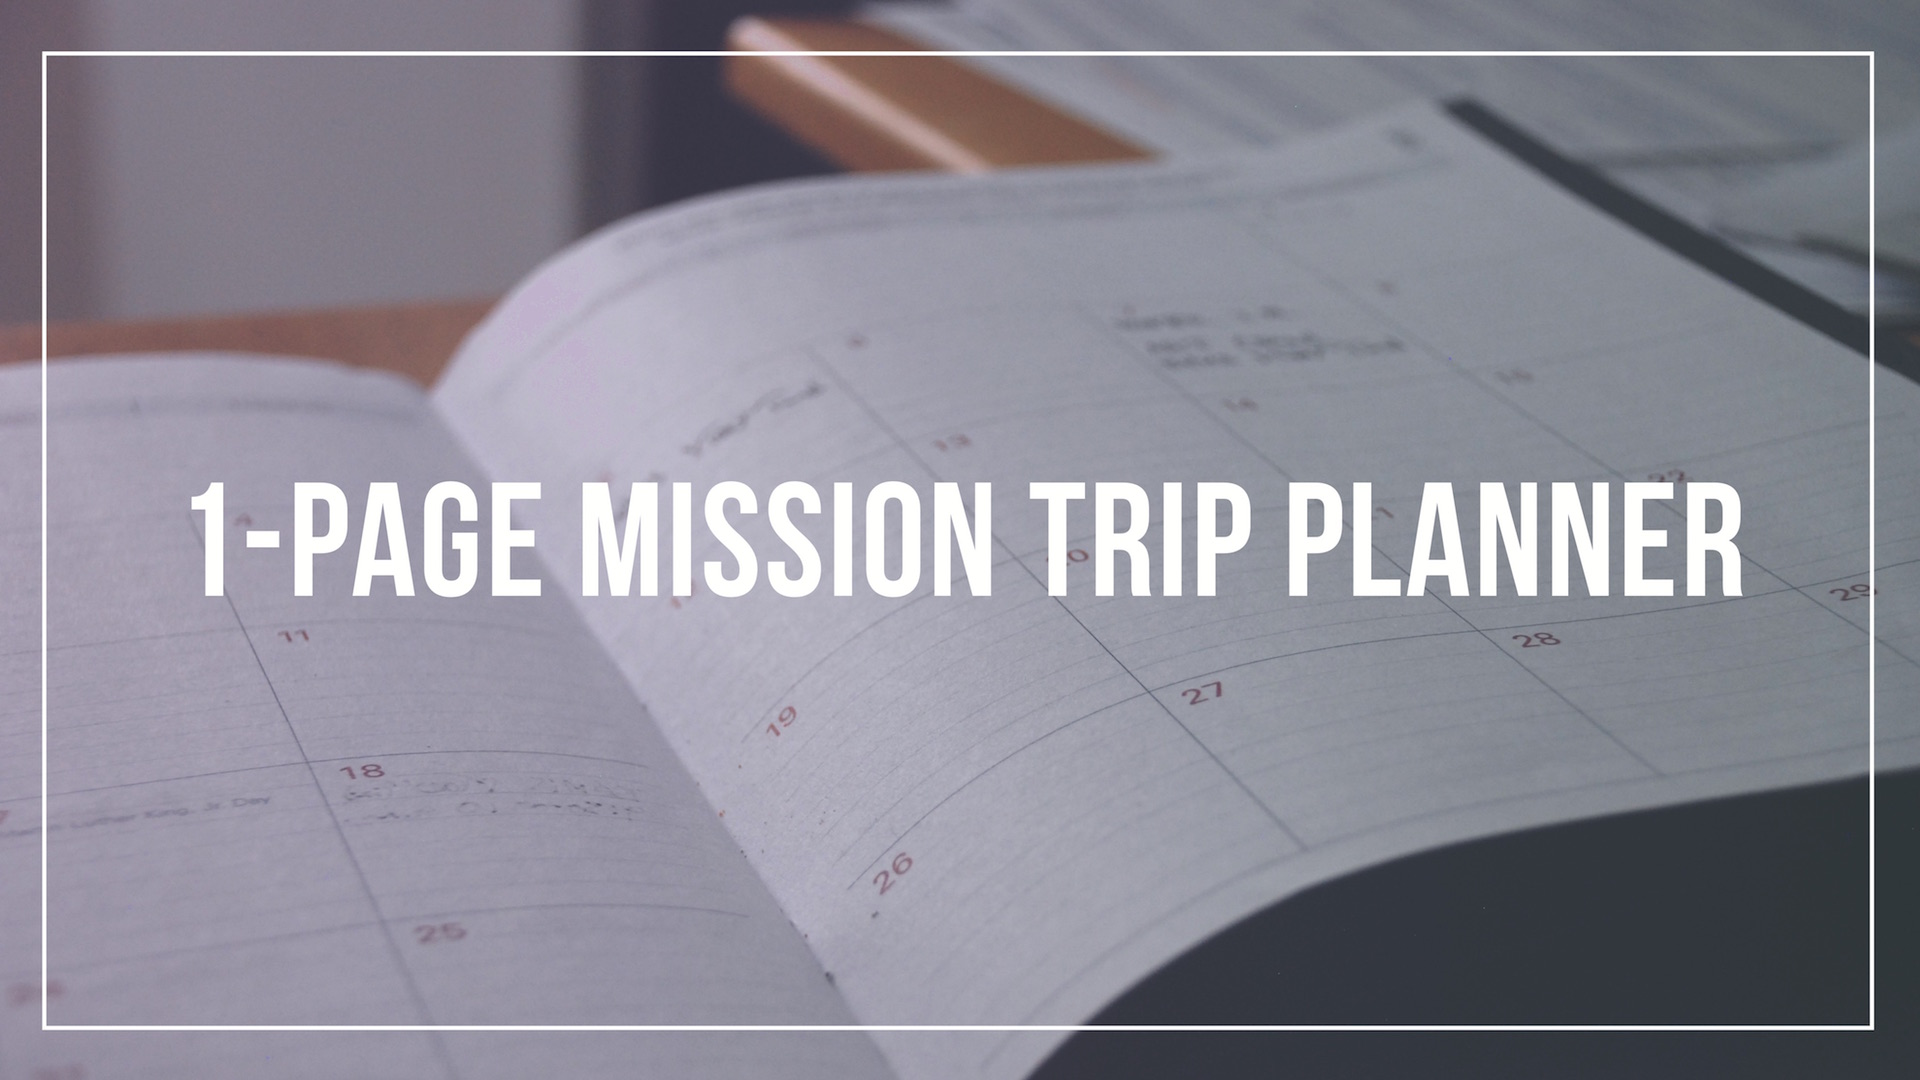 1-Page mission trip planner